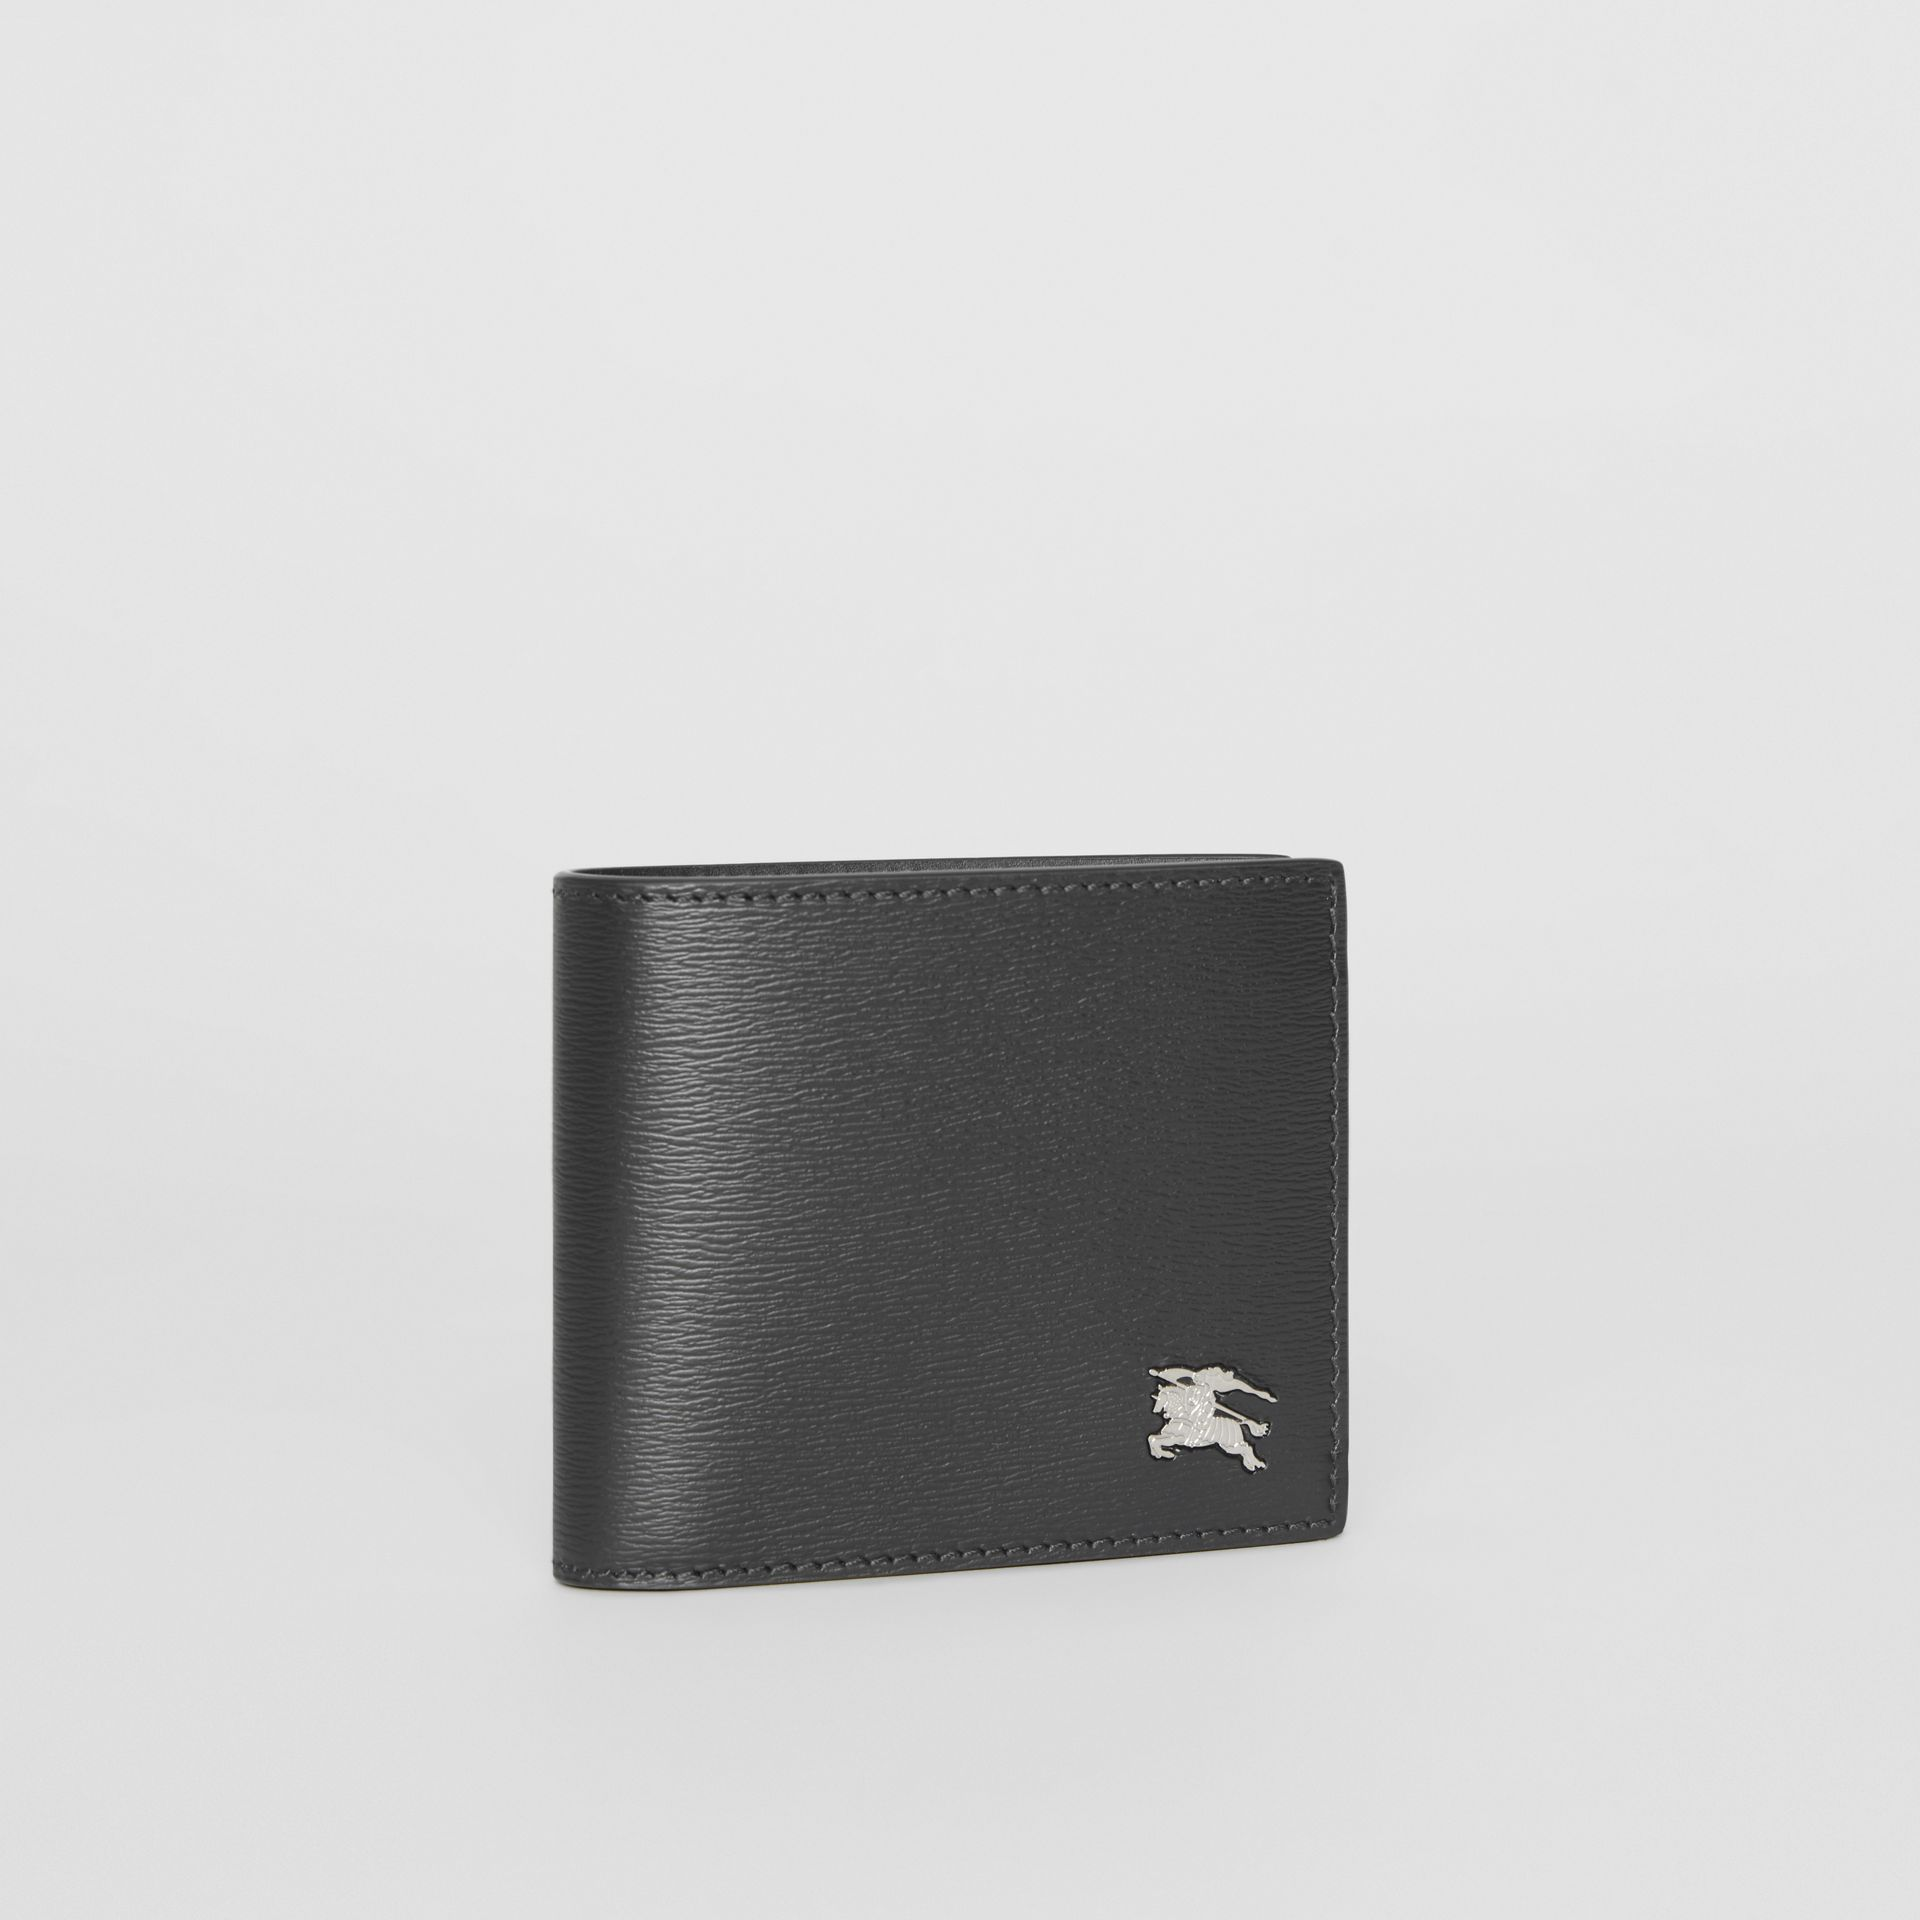 EKD London Leather Bifold Wallet with ID Card Case in Black - Men | Burberry Australia - gallery image 4